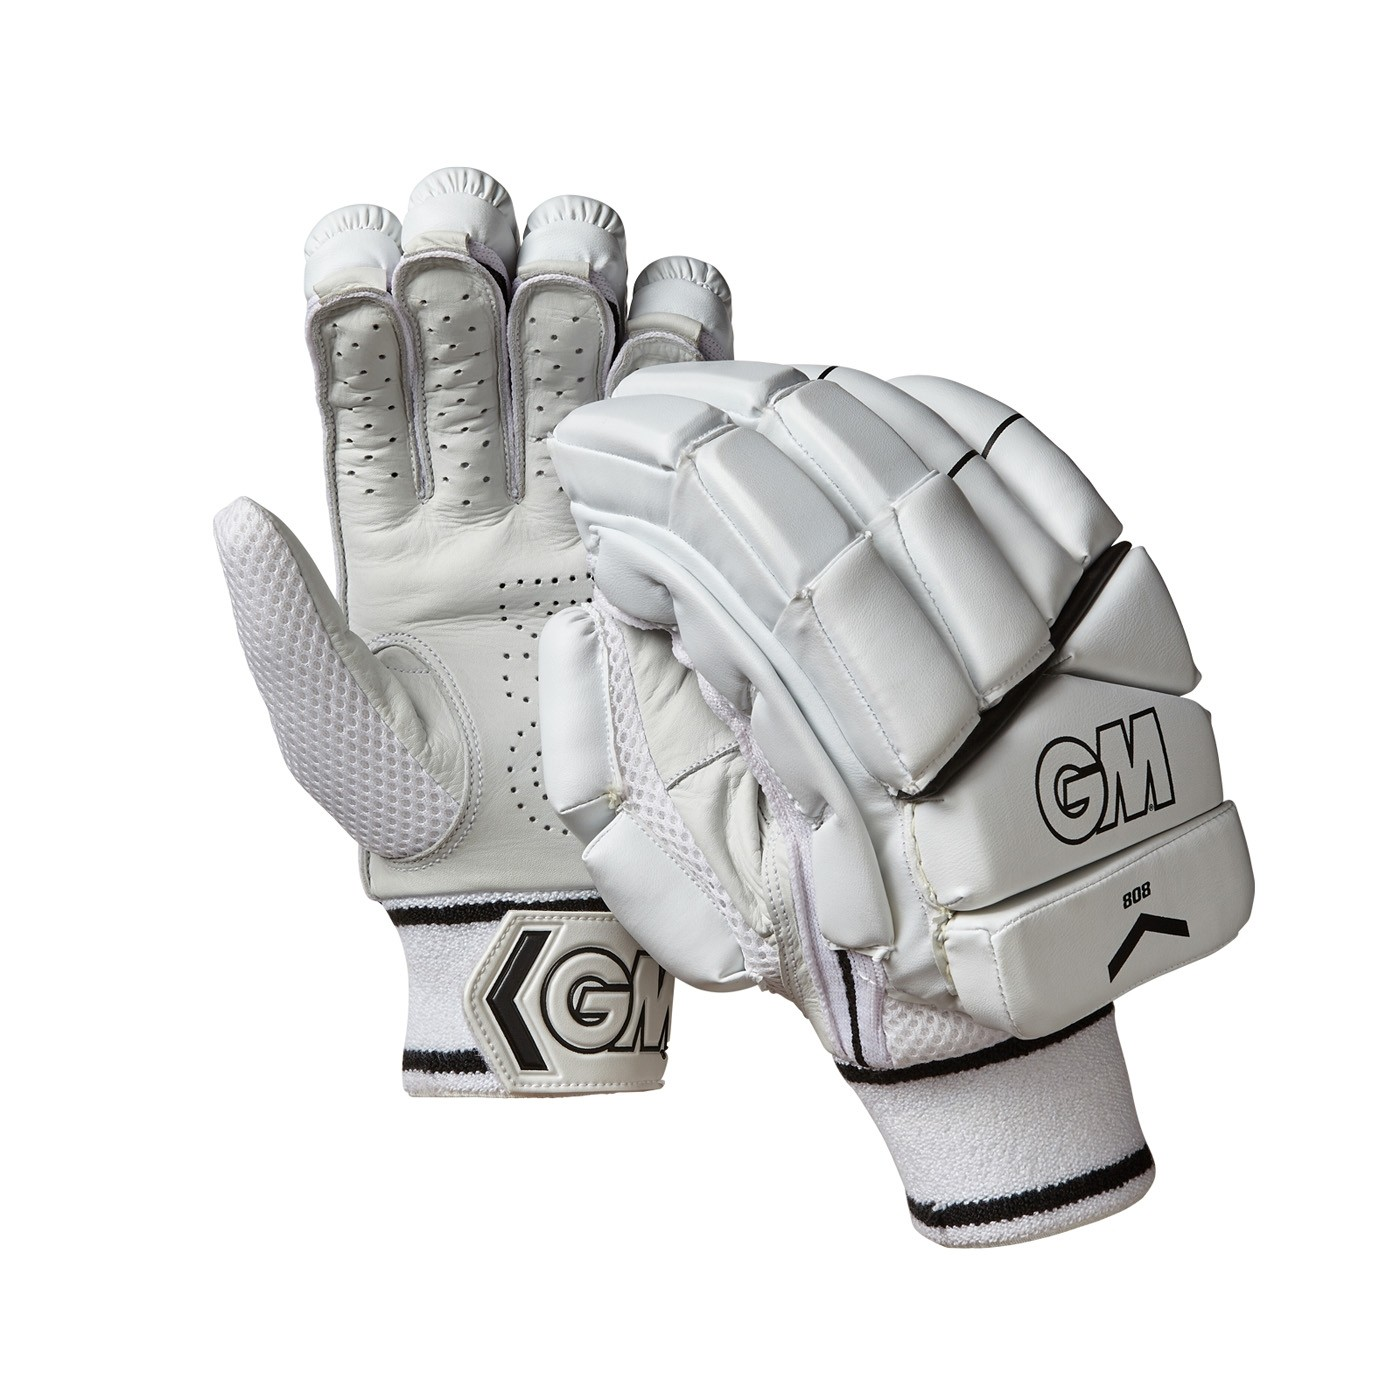 2020 Gunn and Moore 808 Batting Gloves